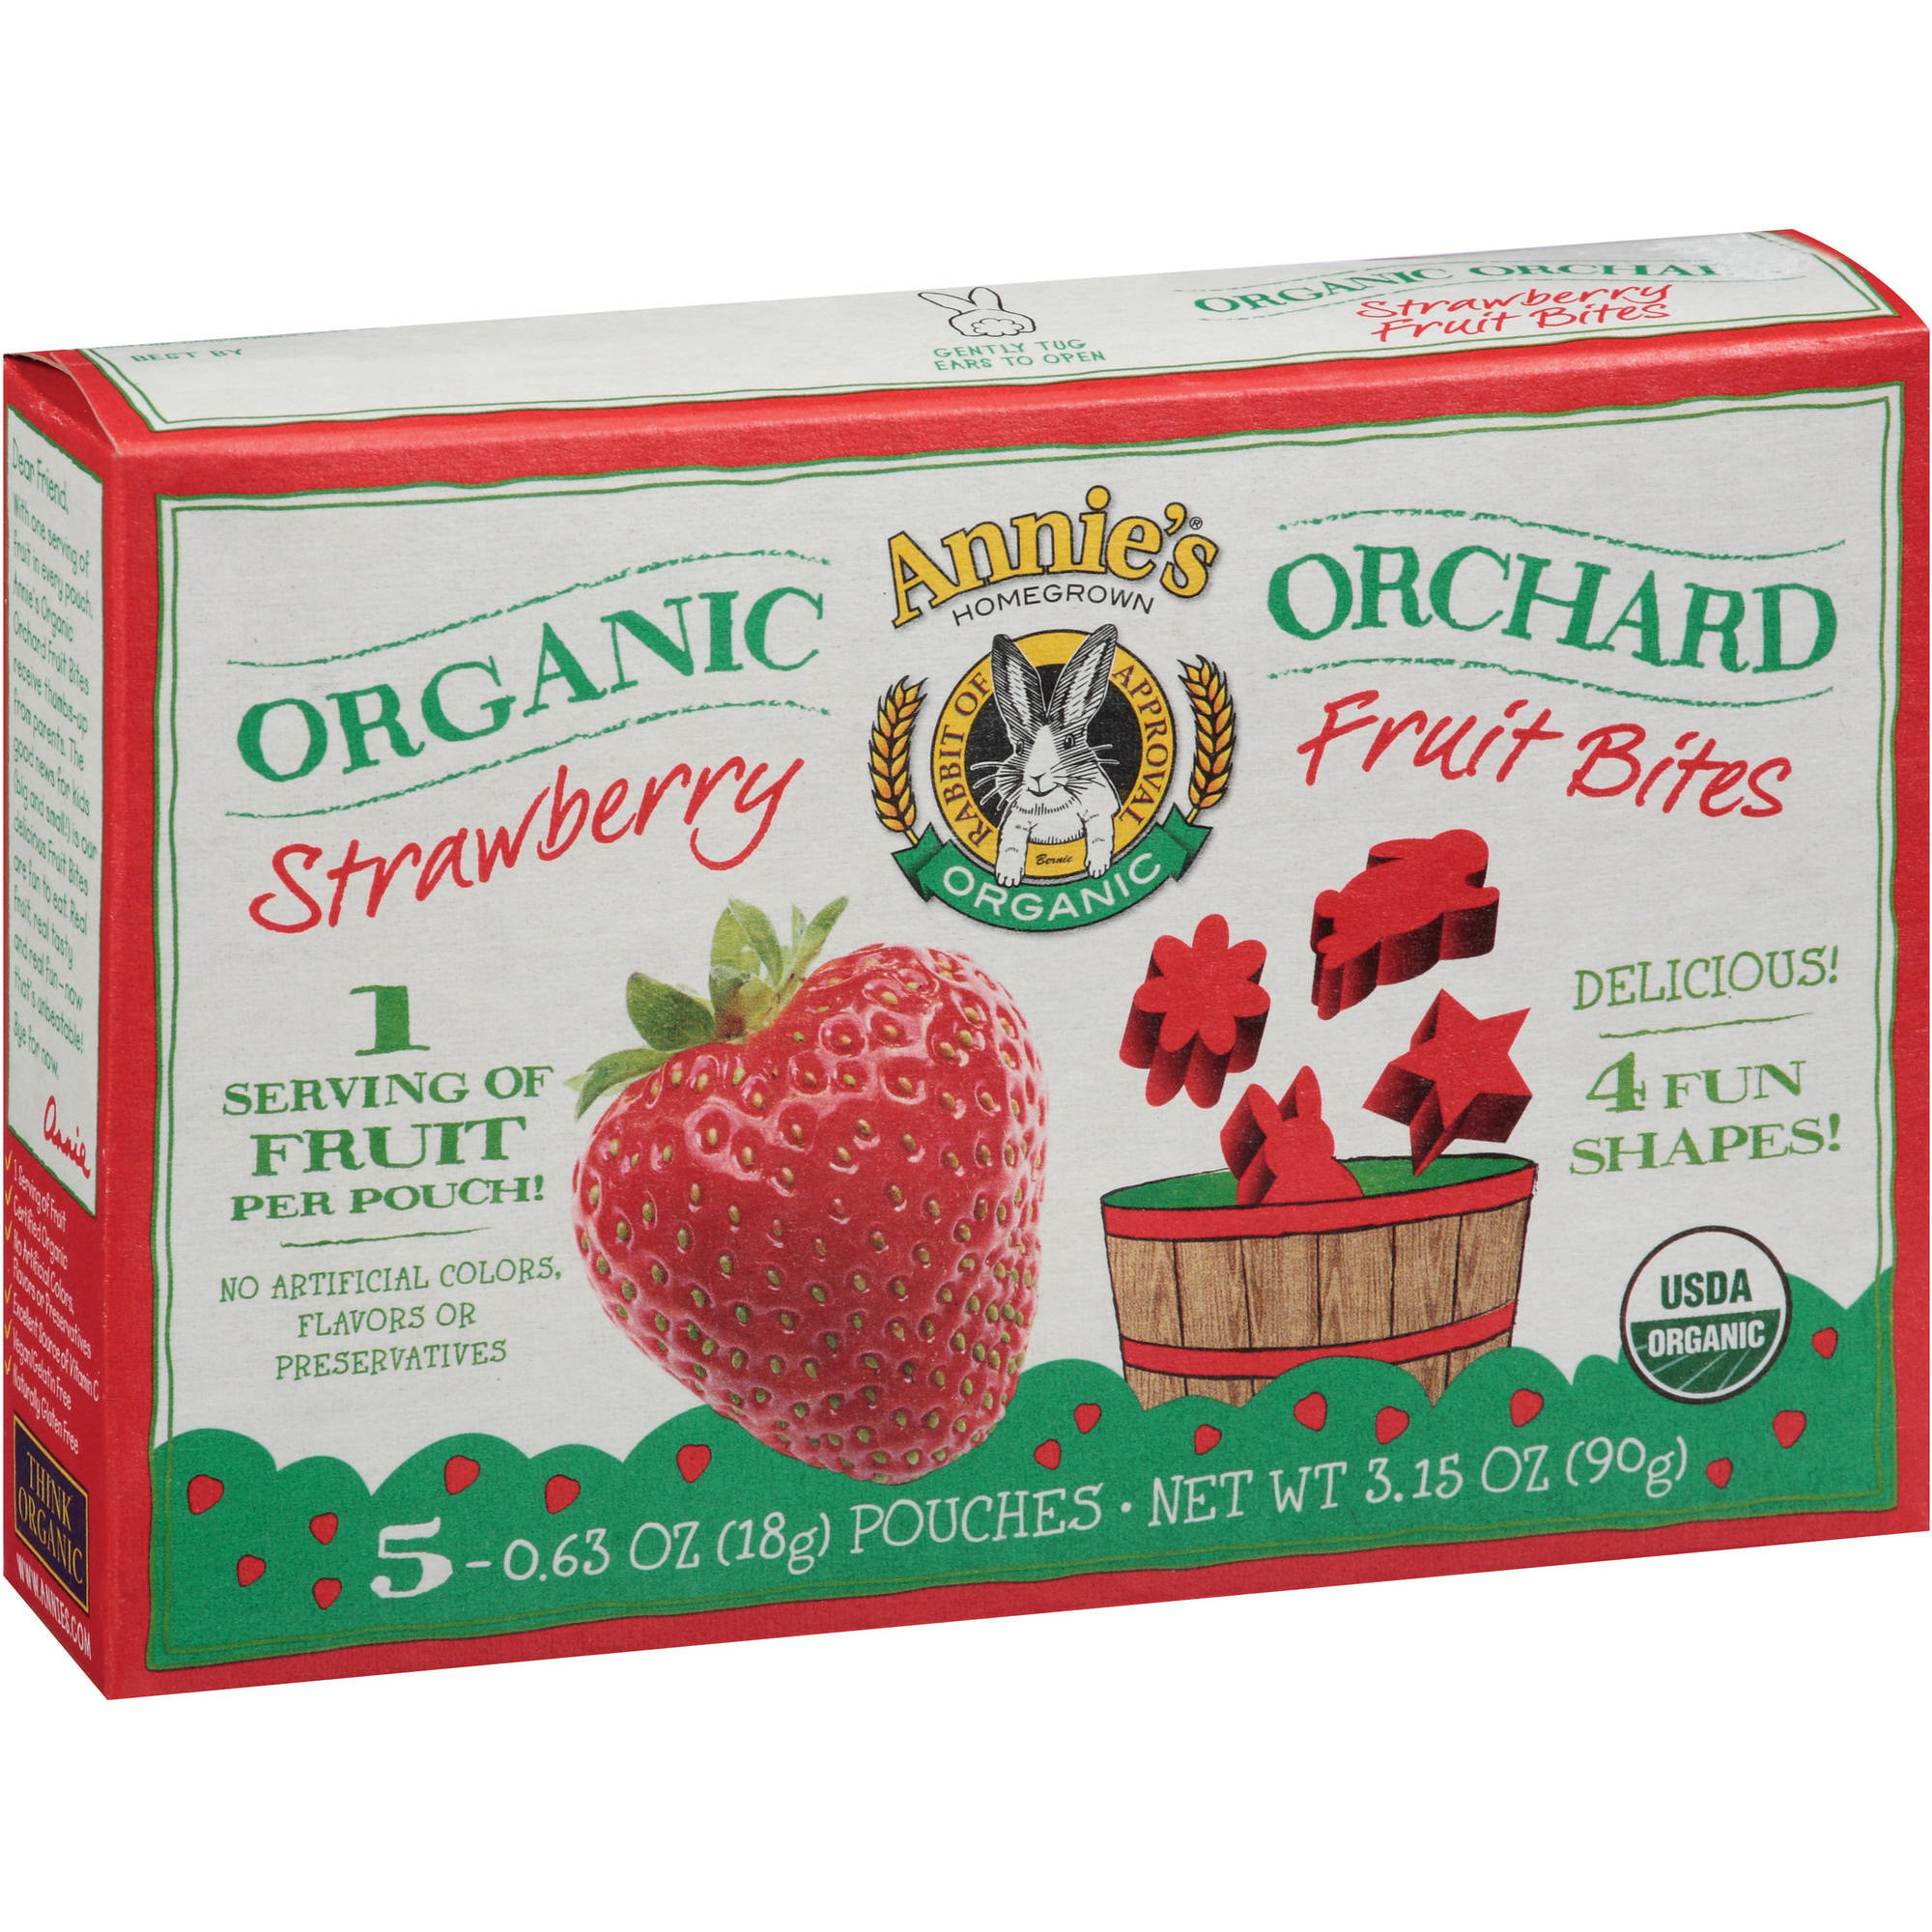 Annie's Homegrown Organic Orchard Strawberry Fruit Bites, 0.63 oz, 5 count